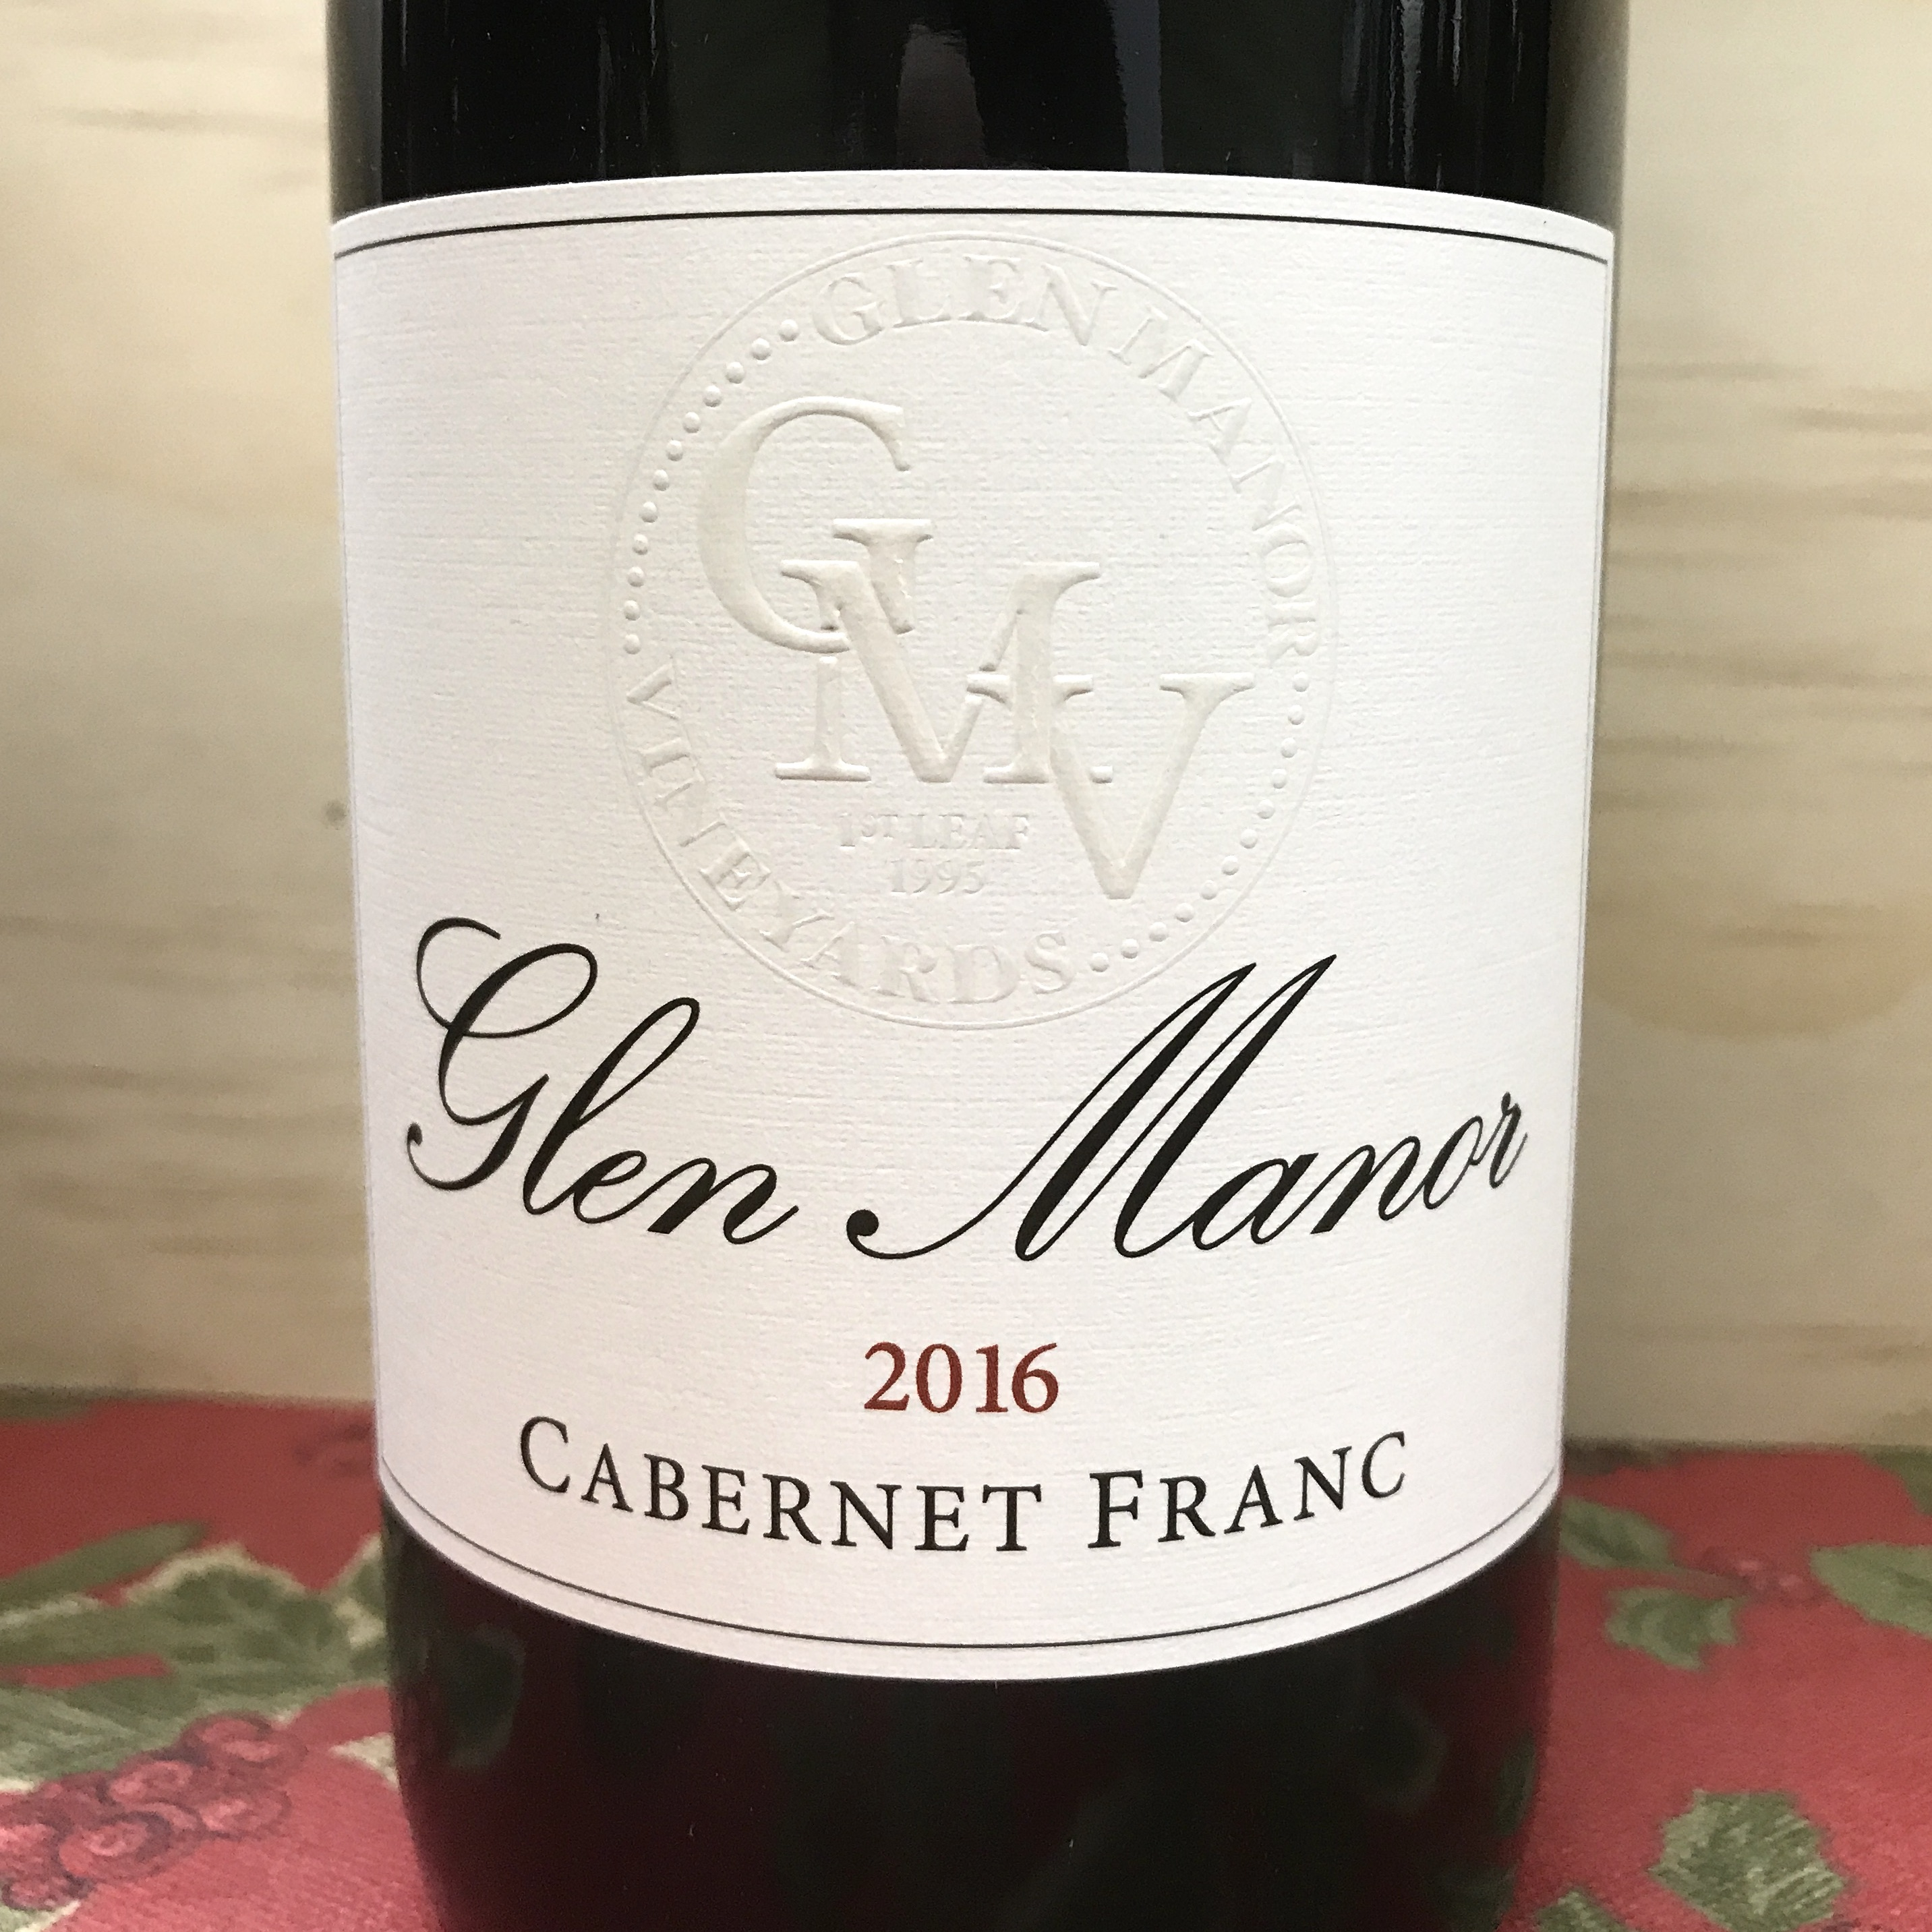 Glen Manor Cabernet Franc 2016